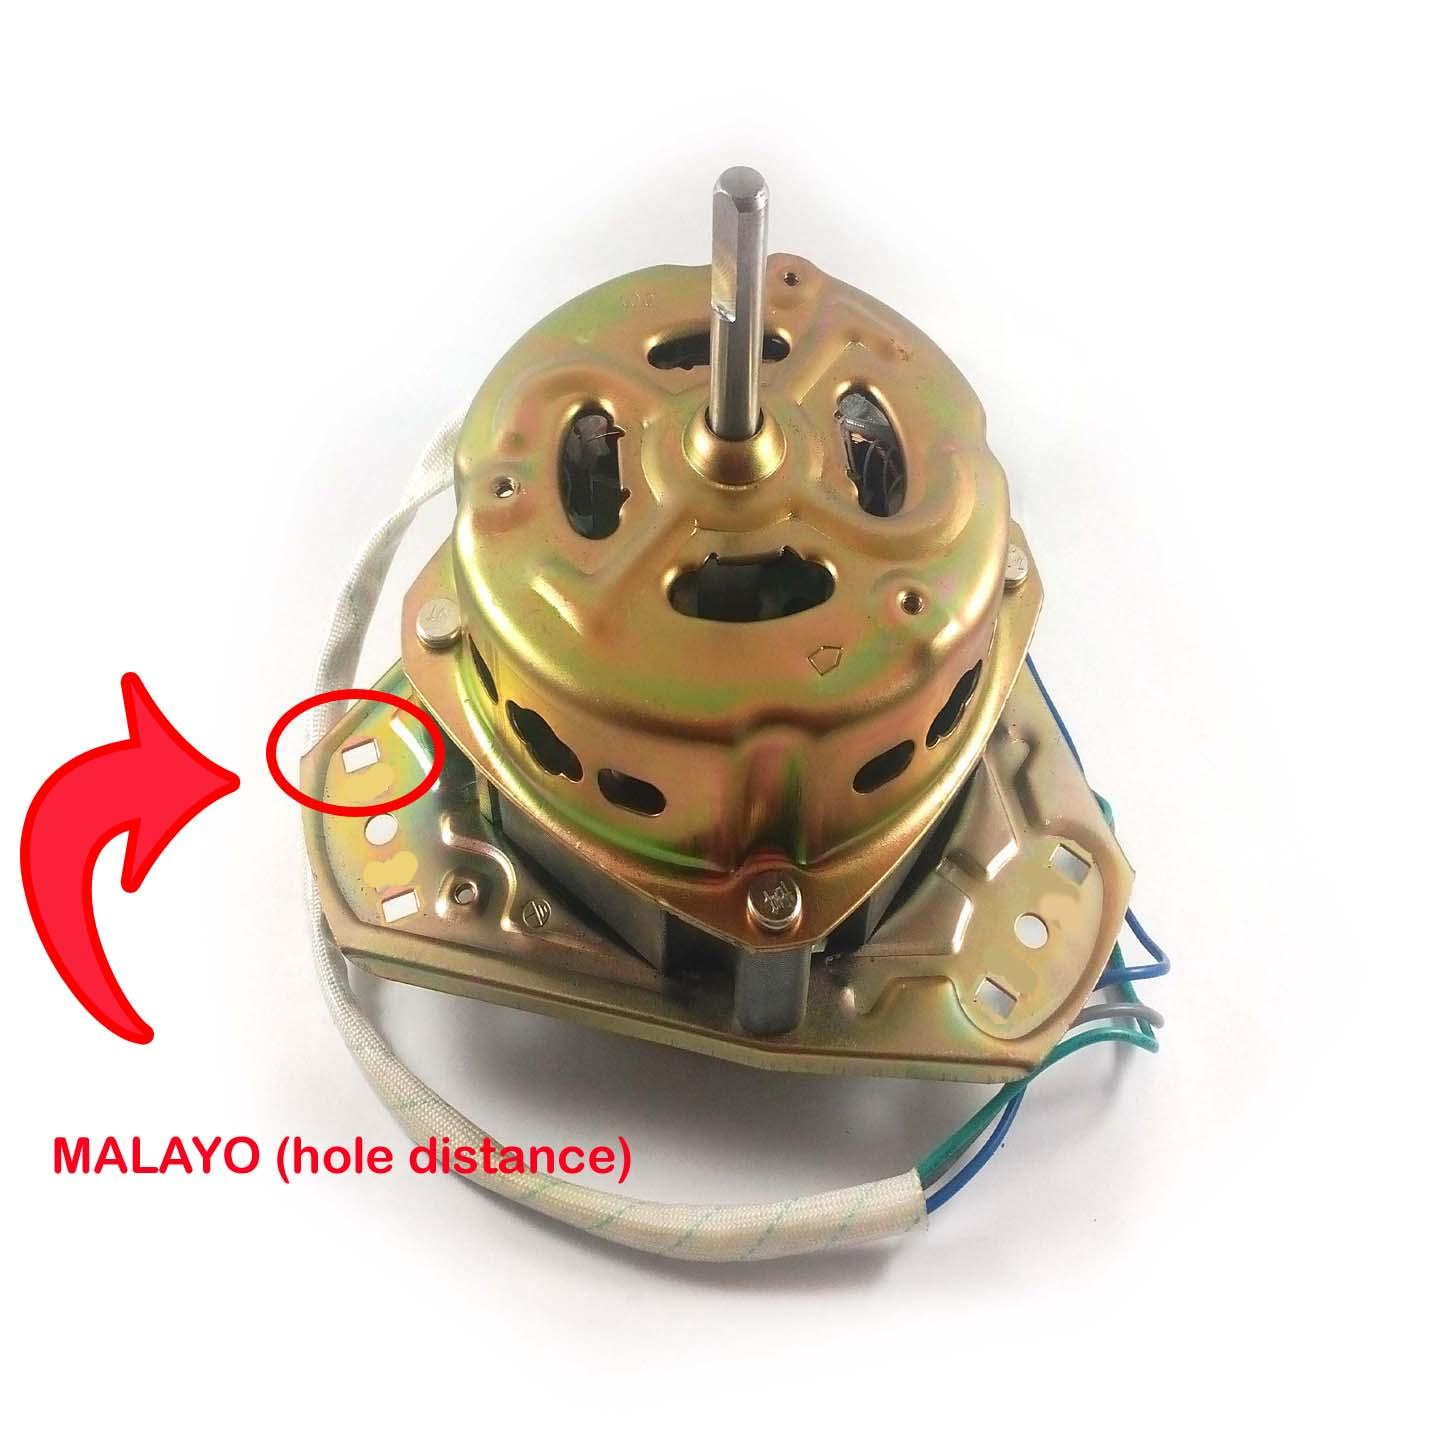 Washer Dryer Accessories For Sale Parts Prices Straight A Washing Machine Motor Wiring Spin Copper 220 V 50 60 Hertz Capacitor 5 Uf